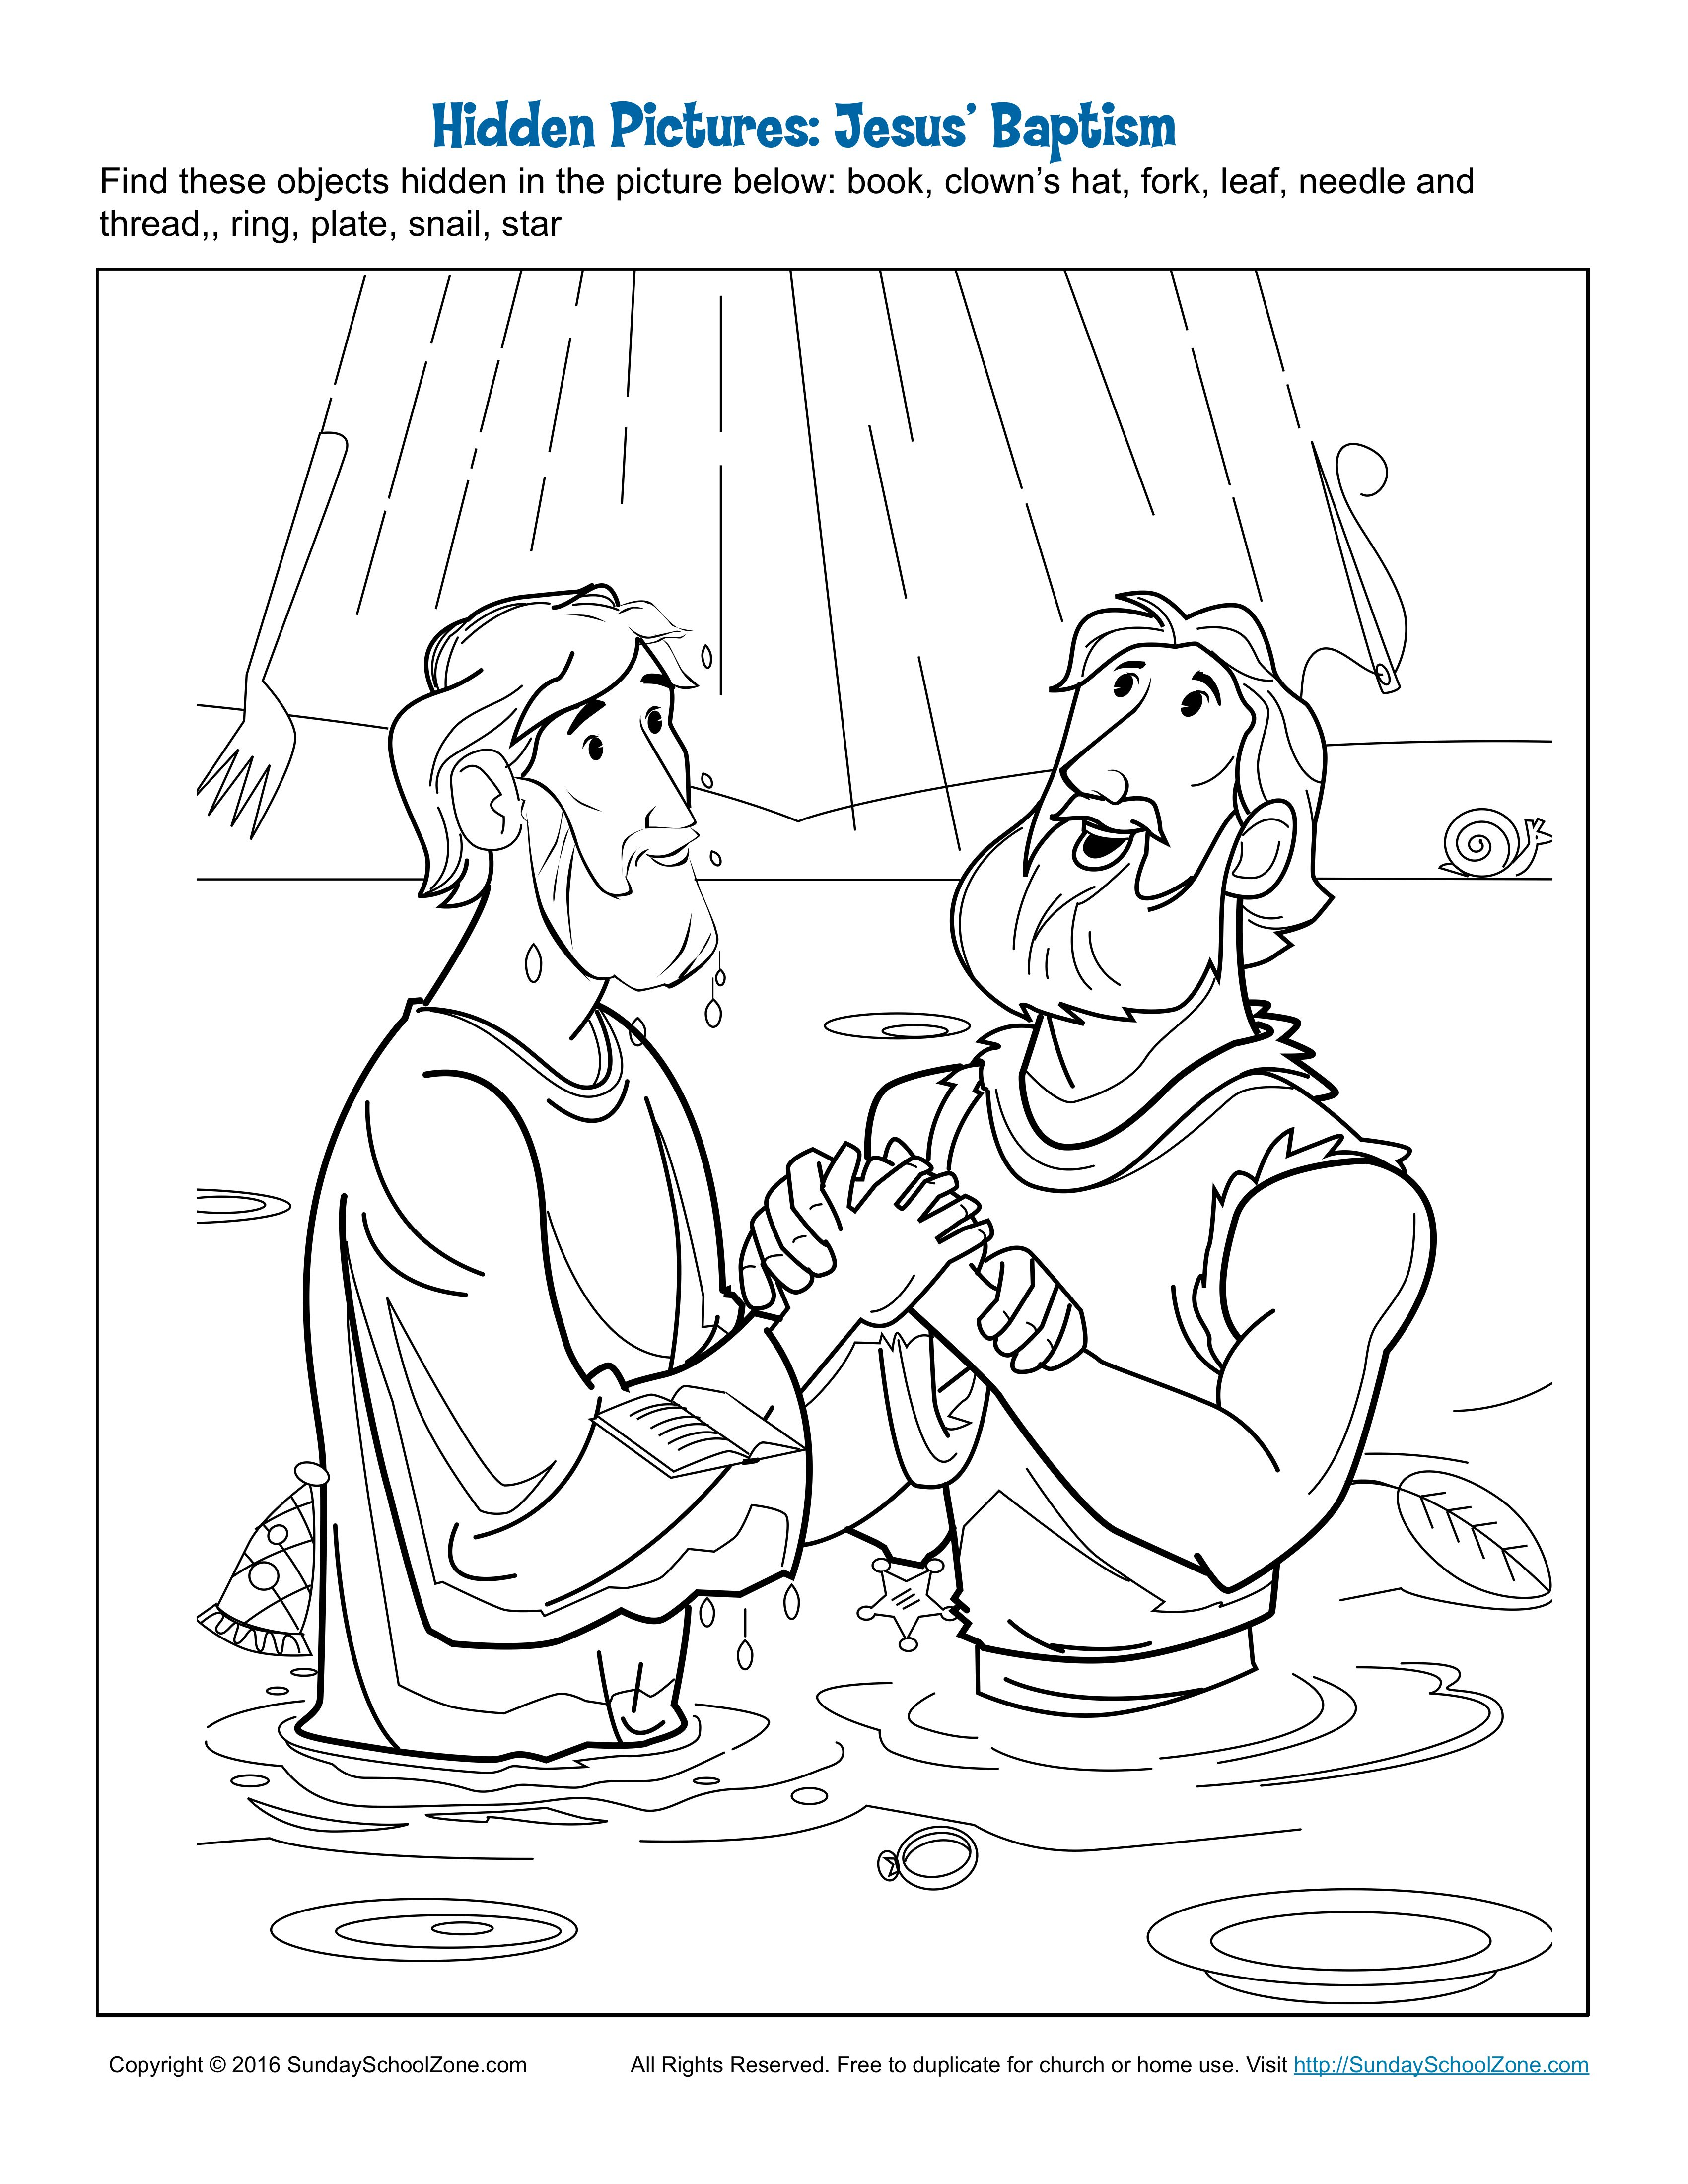 Jesus Baptism Hidden Pictures Sunday School Coloring Pages